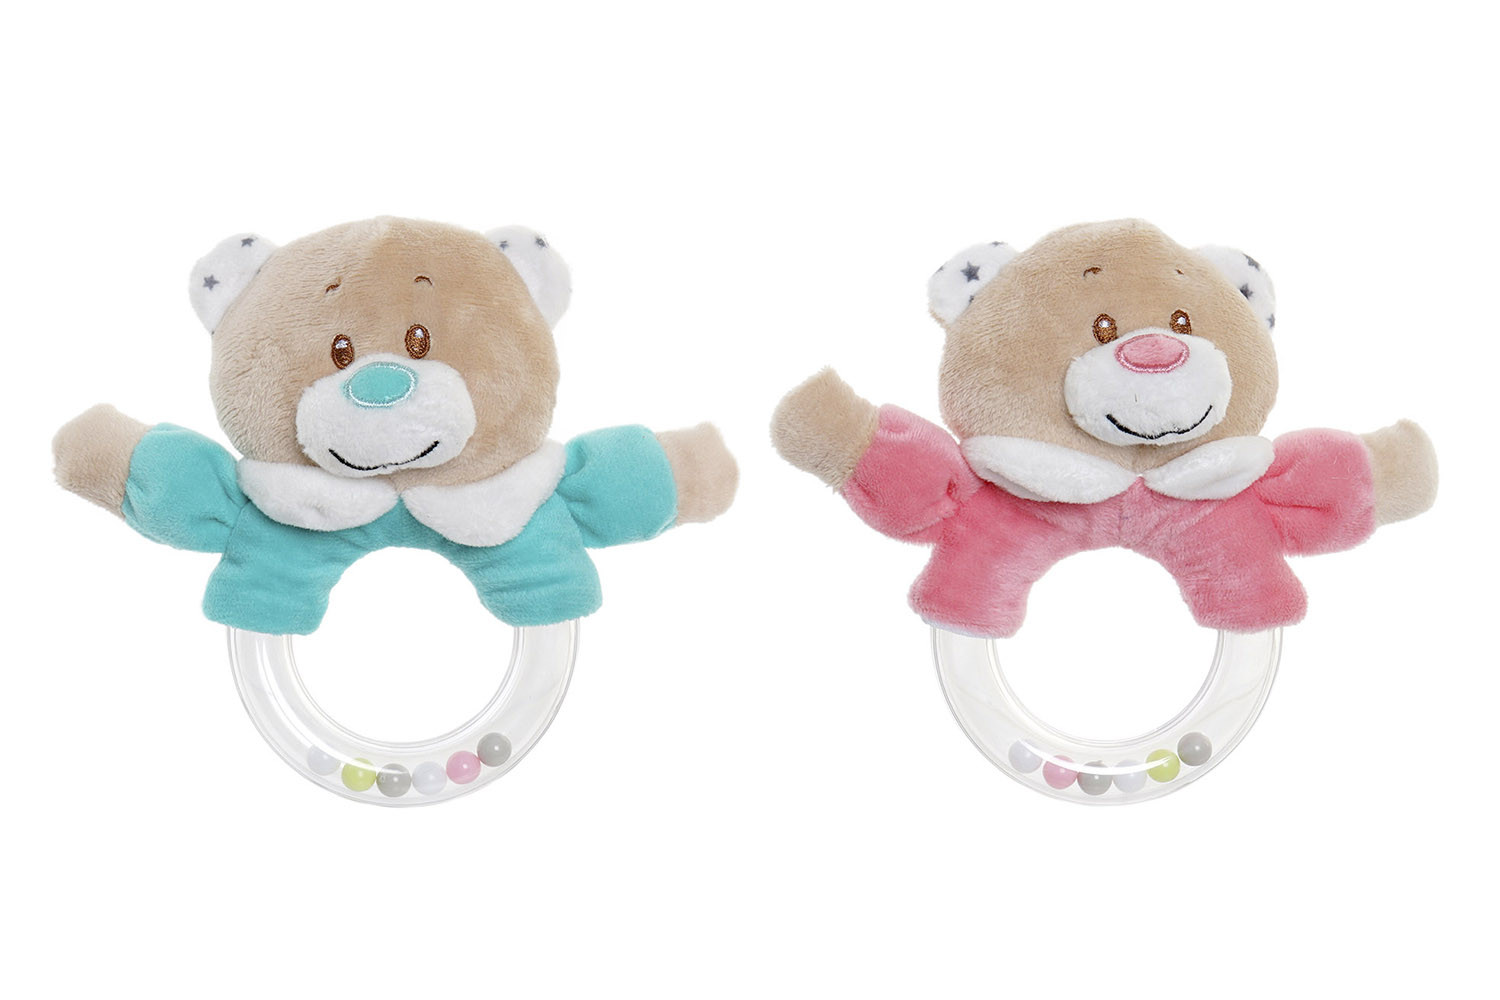 Plush Teddy bear, Rattle Baby Rattle for the Hands With Balls. Design of Animal, with Child style 16x6x14cm